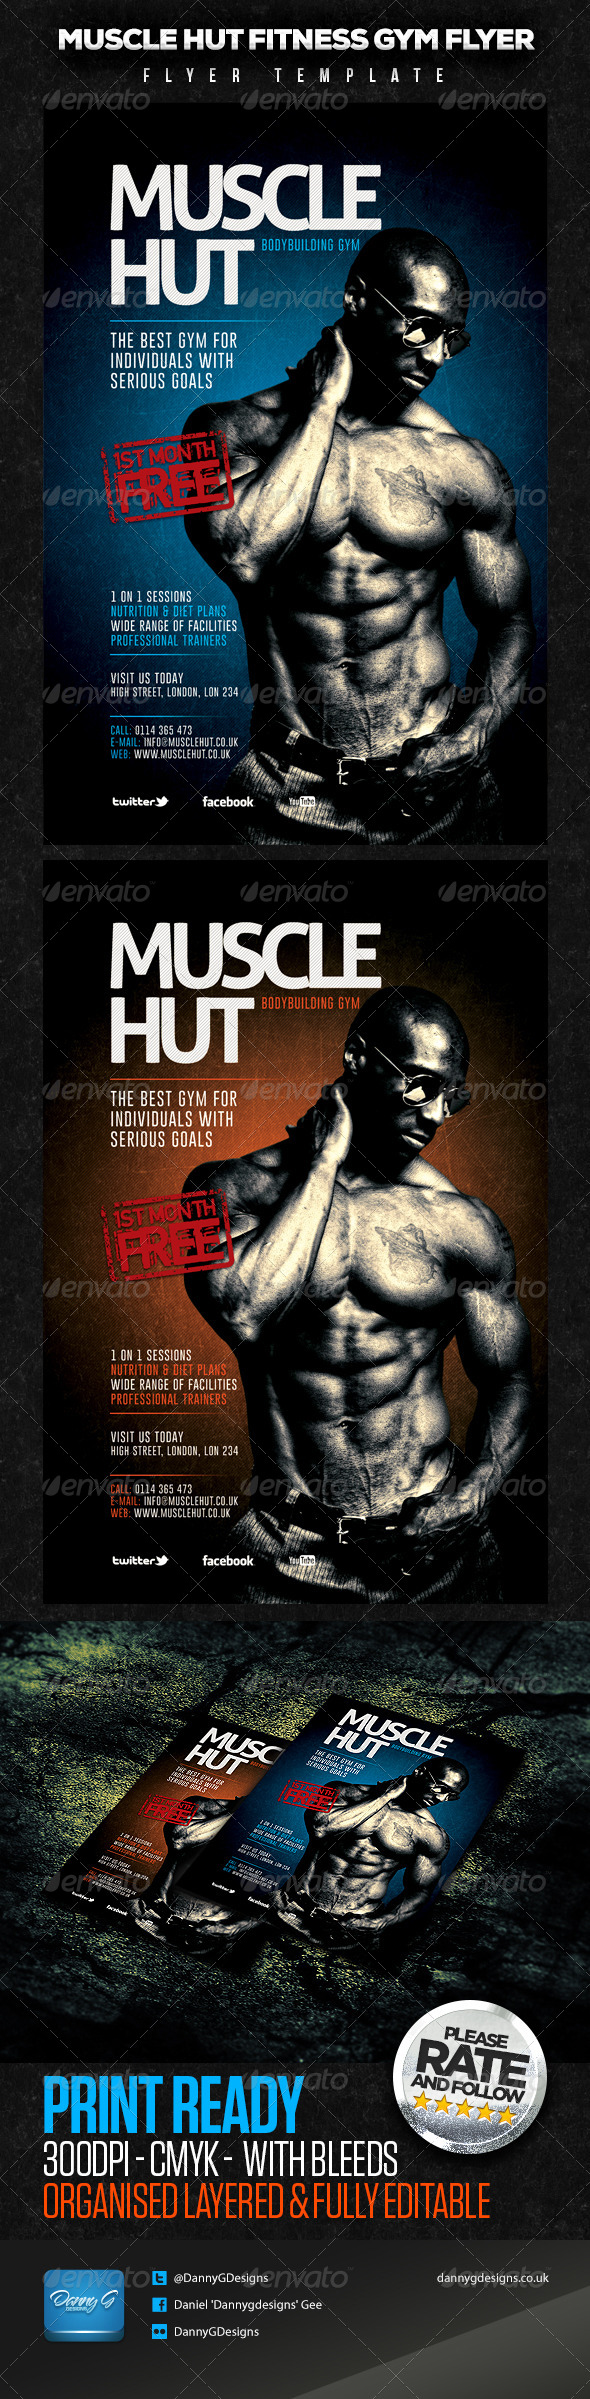 GraphicRiver Muscle Hut Bodybuilding Fitness Flyer Template 5959934